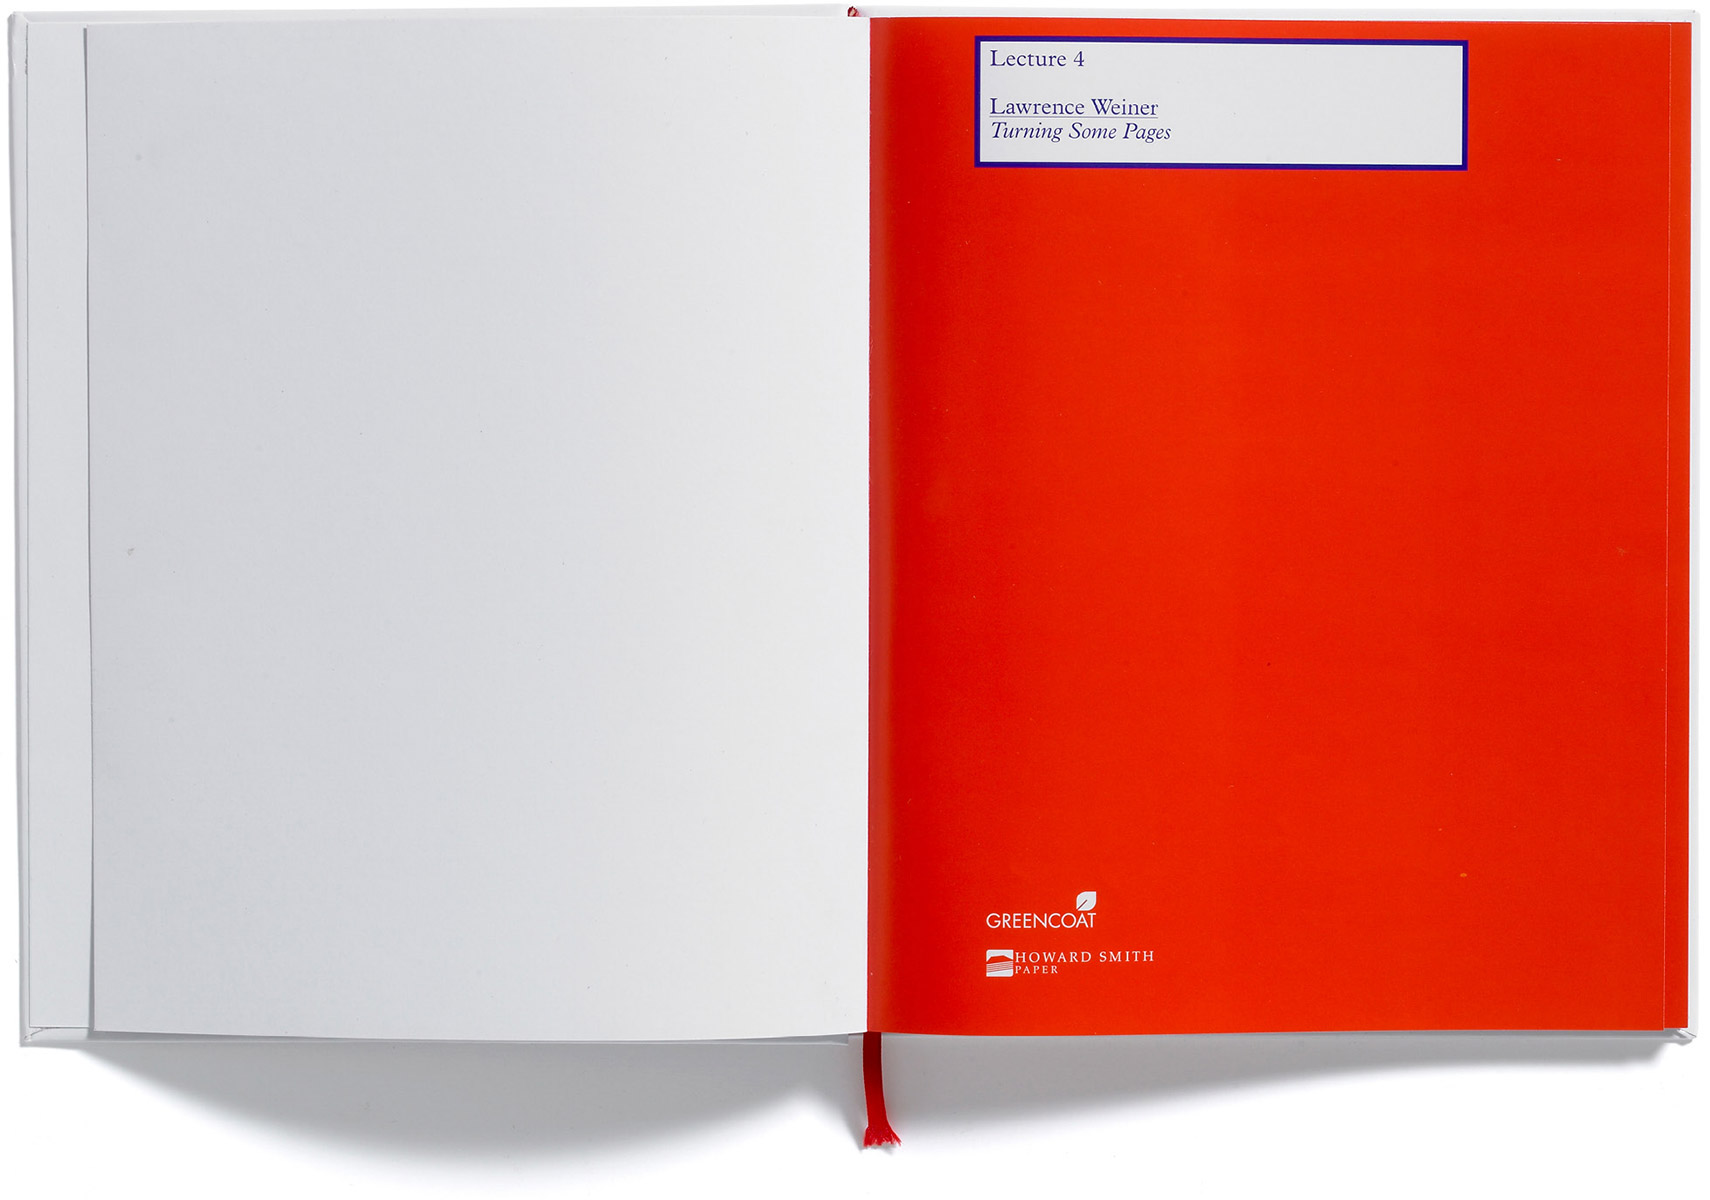 Browns Editions, Lawrence Weiner, Howard Smith Paper Lecture Series, Browns Design